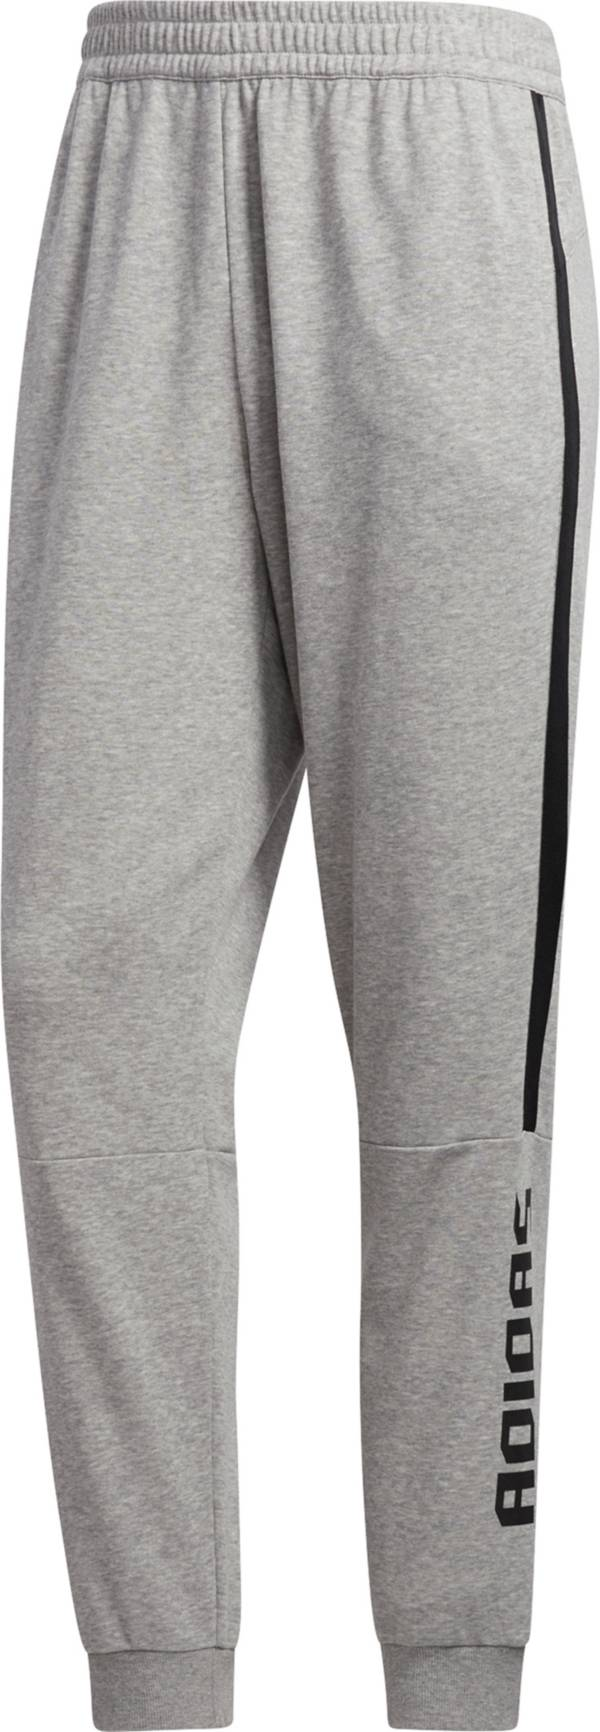 adidas Men's Post Game Lite Twill Graphic Joggers product image